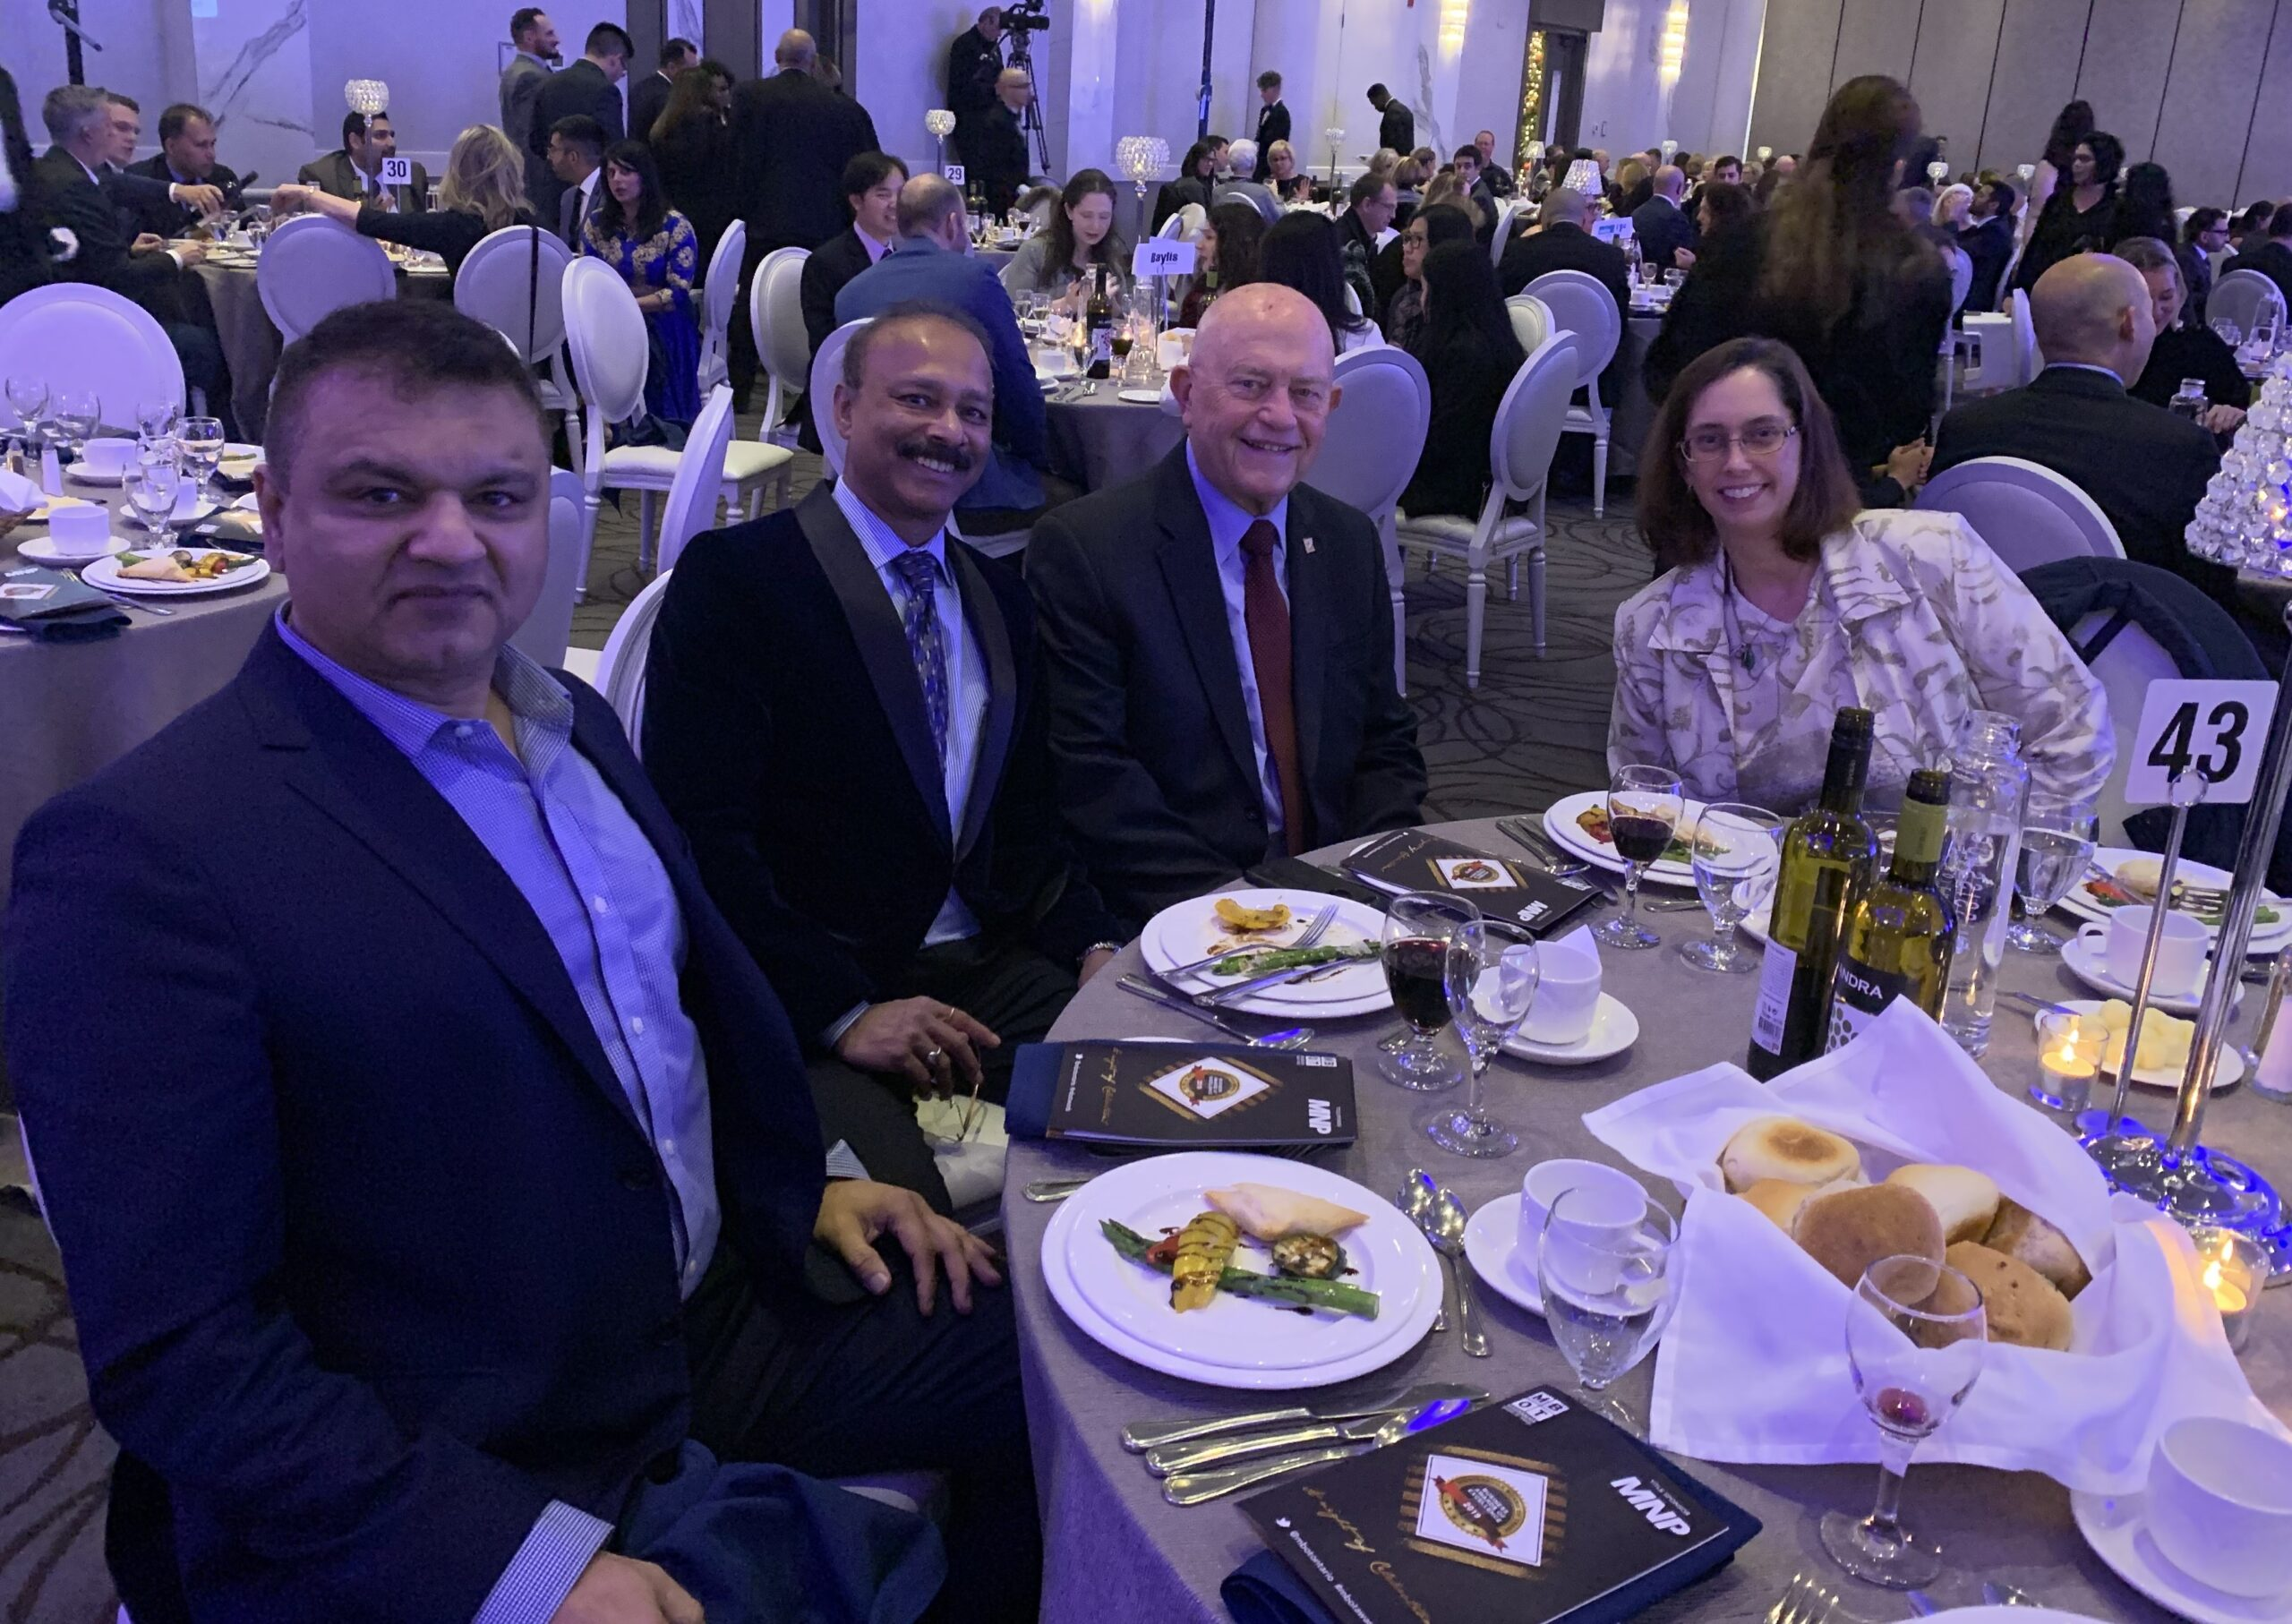 Mississauga, November 14, 2019 <br/>iSmartStudent Business Head Canada nominated in the MBOT 2019 Mississauga Business Awards of Excellence